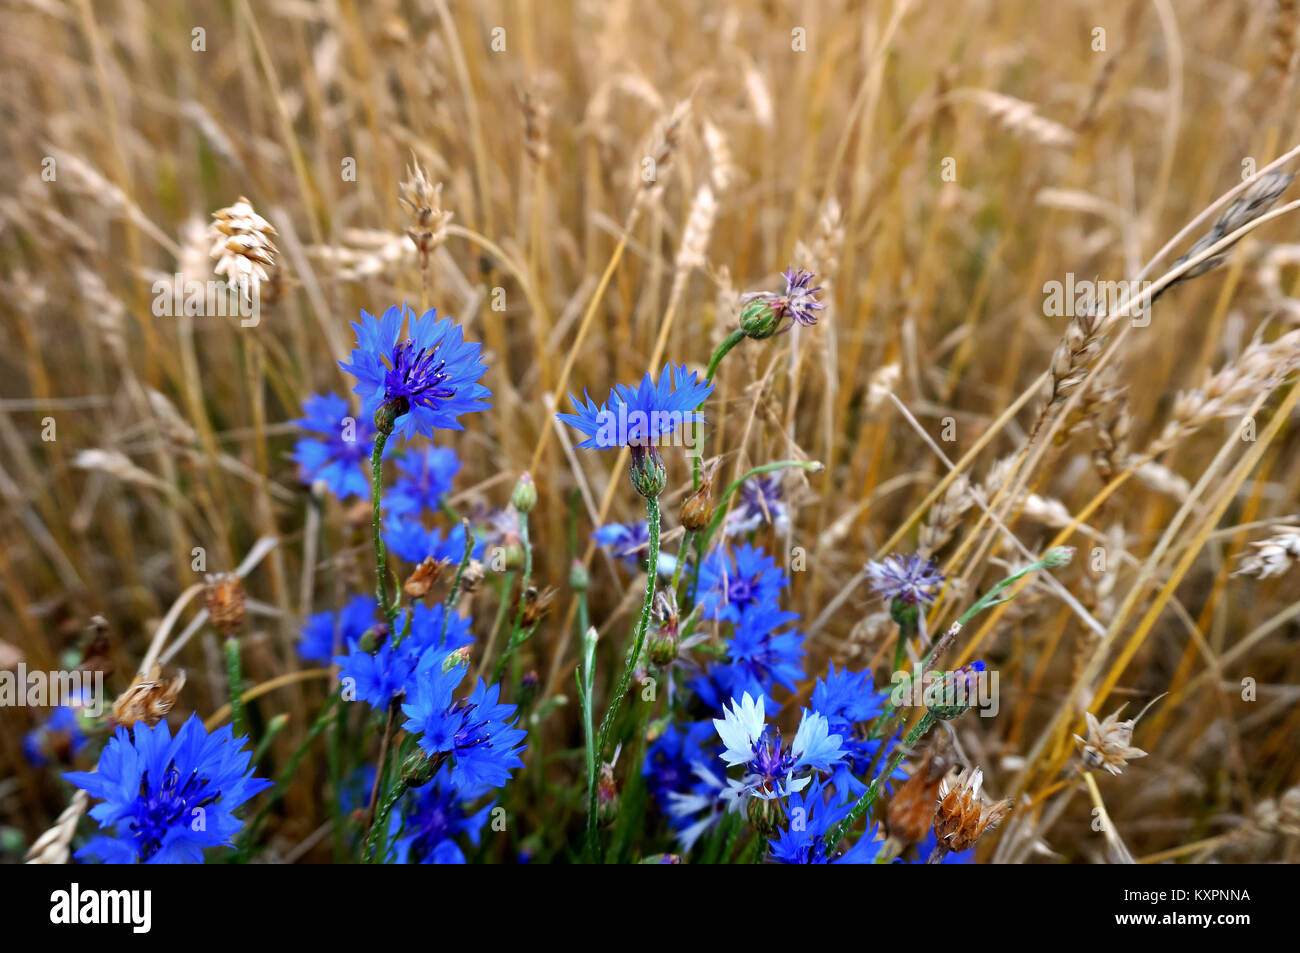 a field of blue cornflowers between the ears, blue cornflowers among the yellow ears of corn - Stock Image